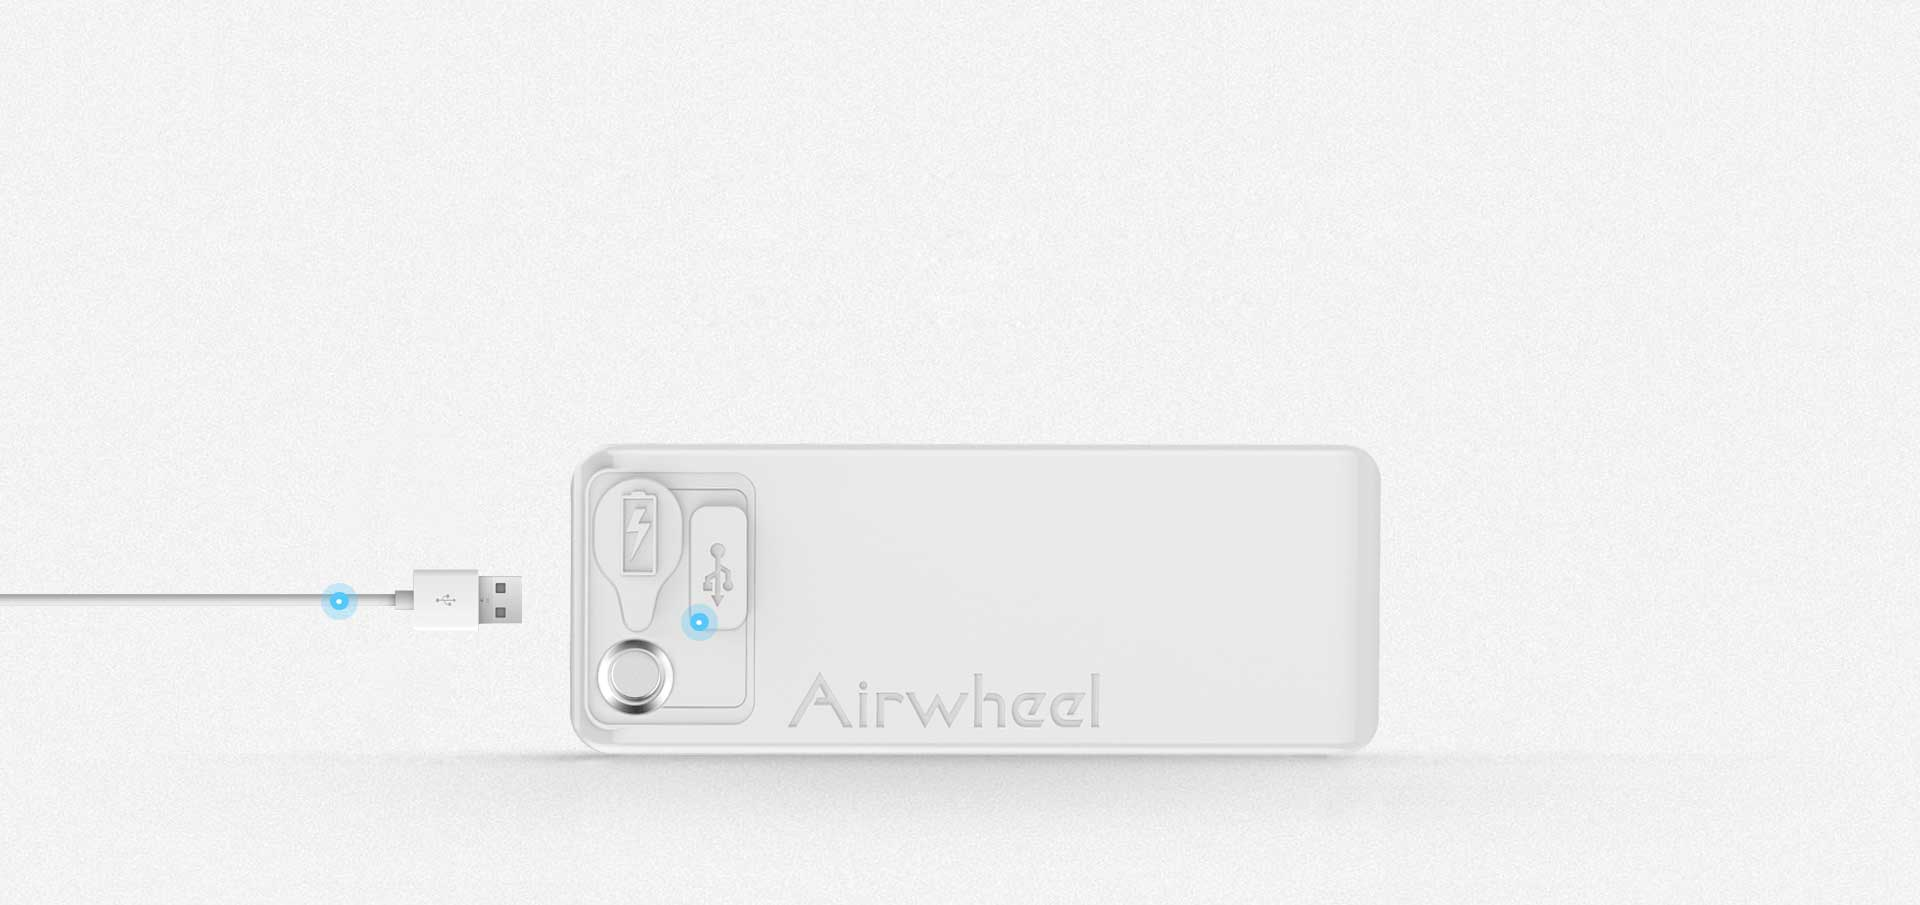 airwheel z5 usb